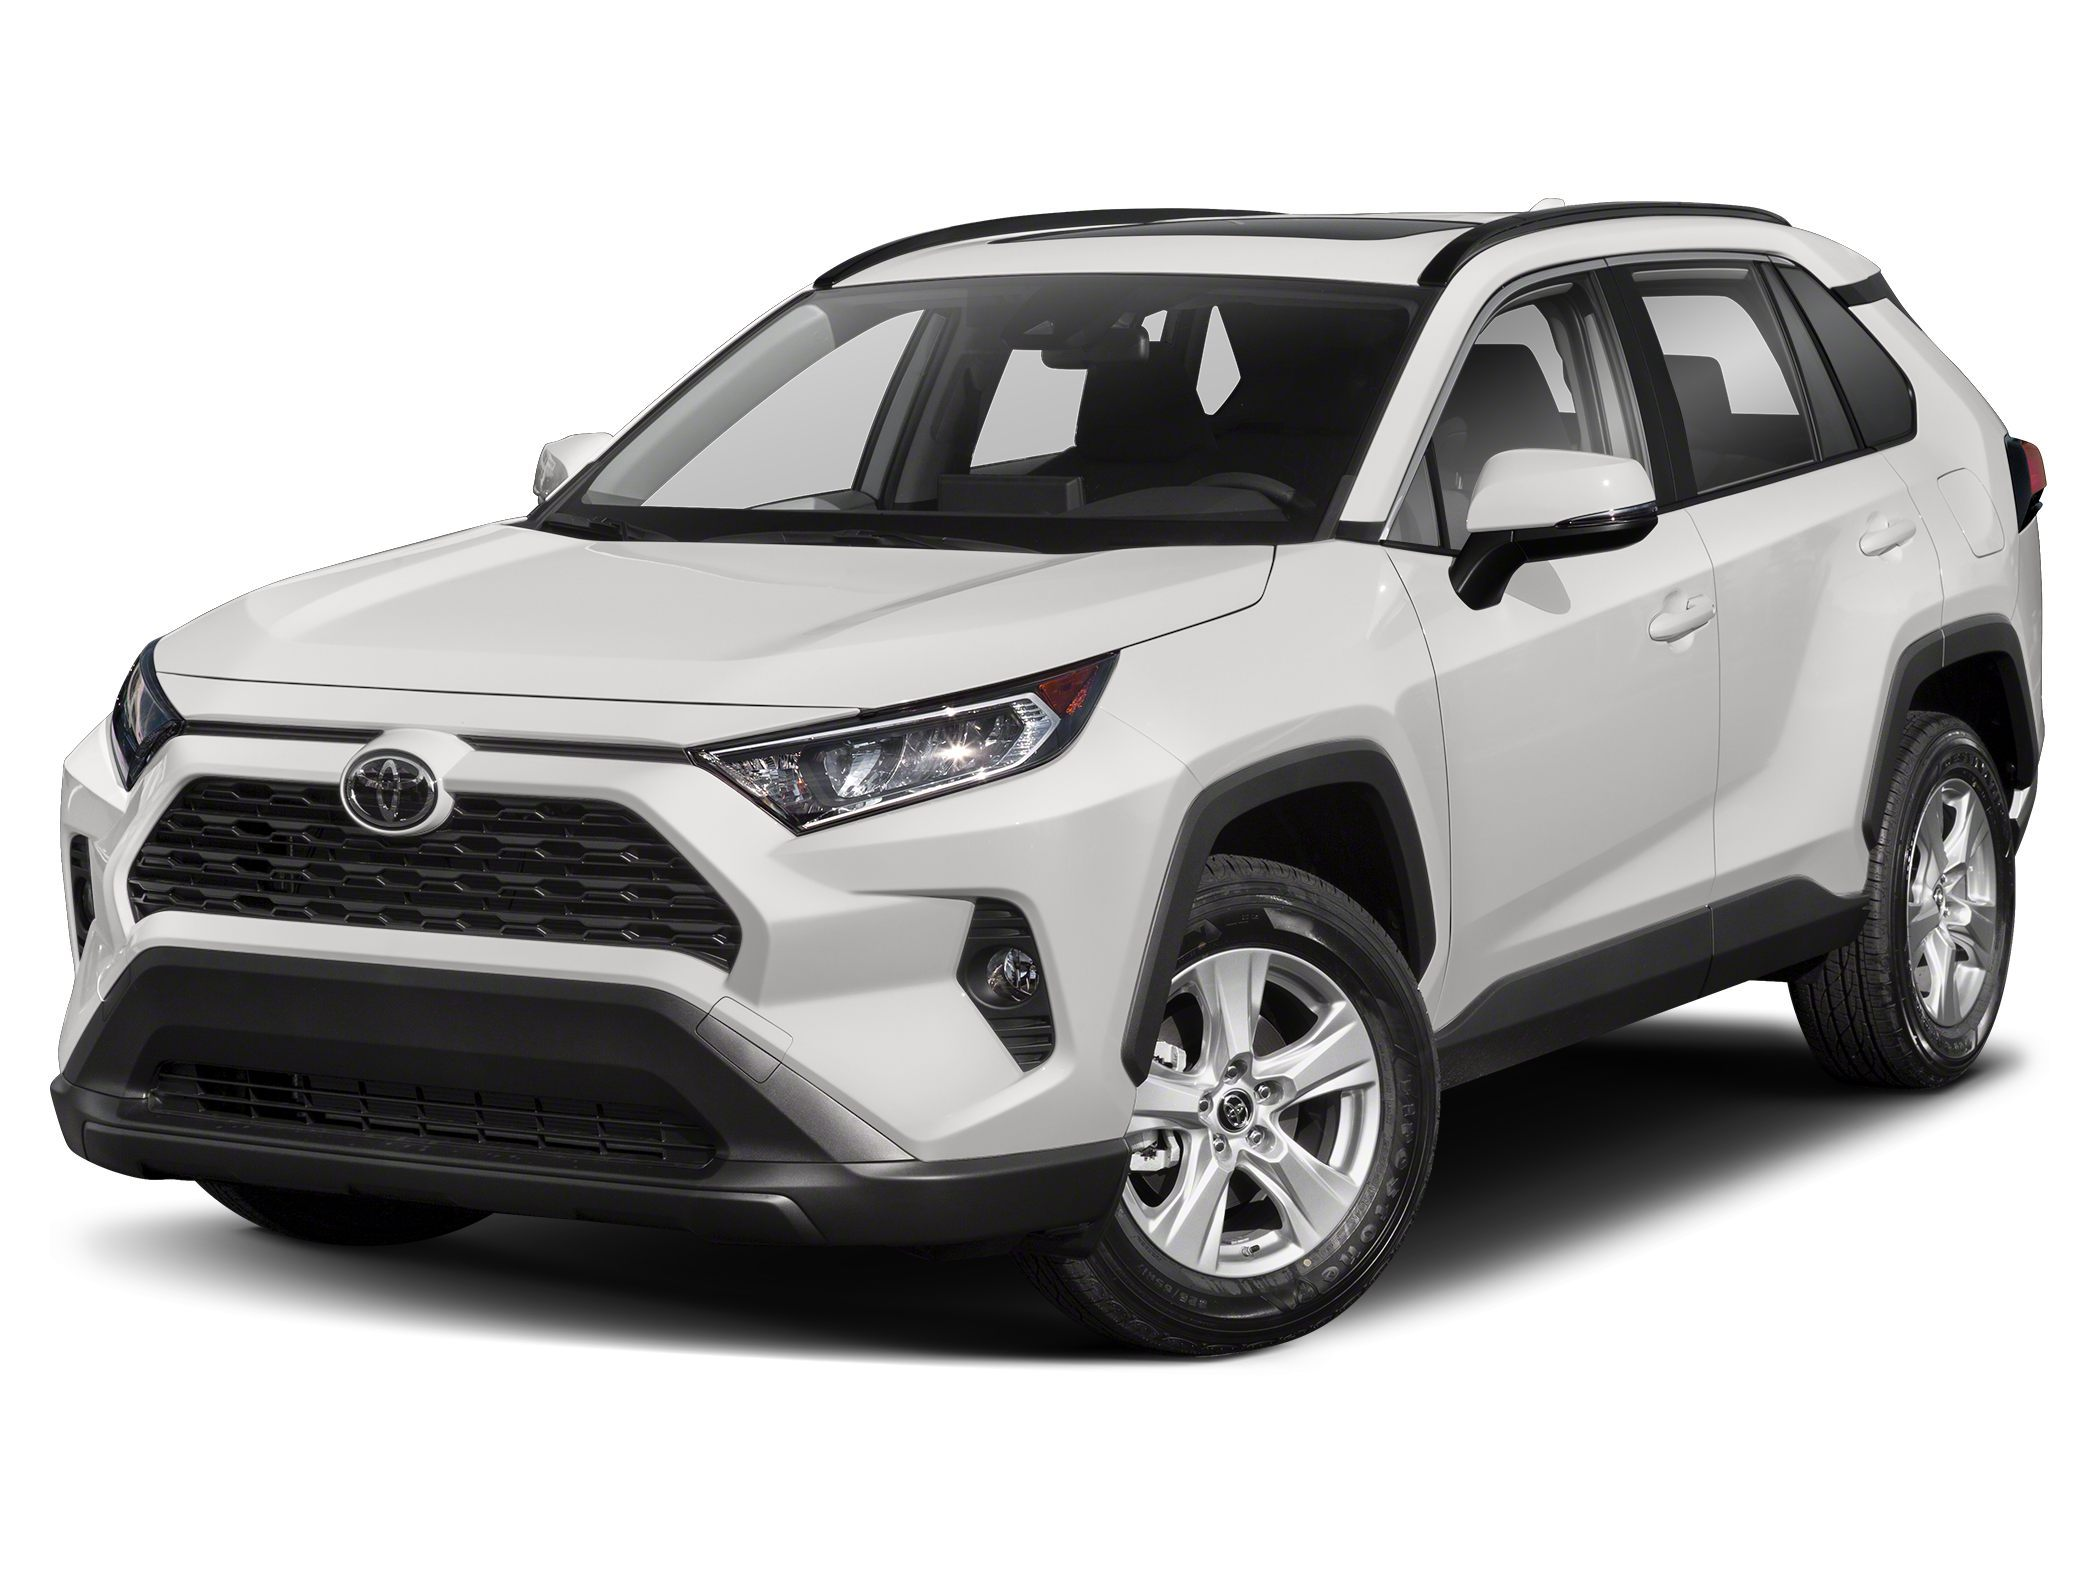 Brand New 2021 Toyota Rav4 Xle Suv For Sale Kings Toyota Vehicle Is Located In Cincinnati Oh Stock Mc112750 Vin 2t3w1rfv7mc112750 Color Is Super White Phone Span Data Phone Ref Sales Data Account Ref Kingstoyotascion 513 683 5440 Span